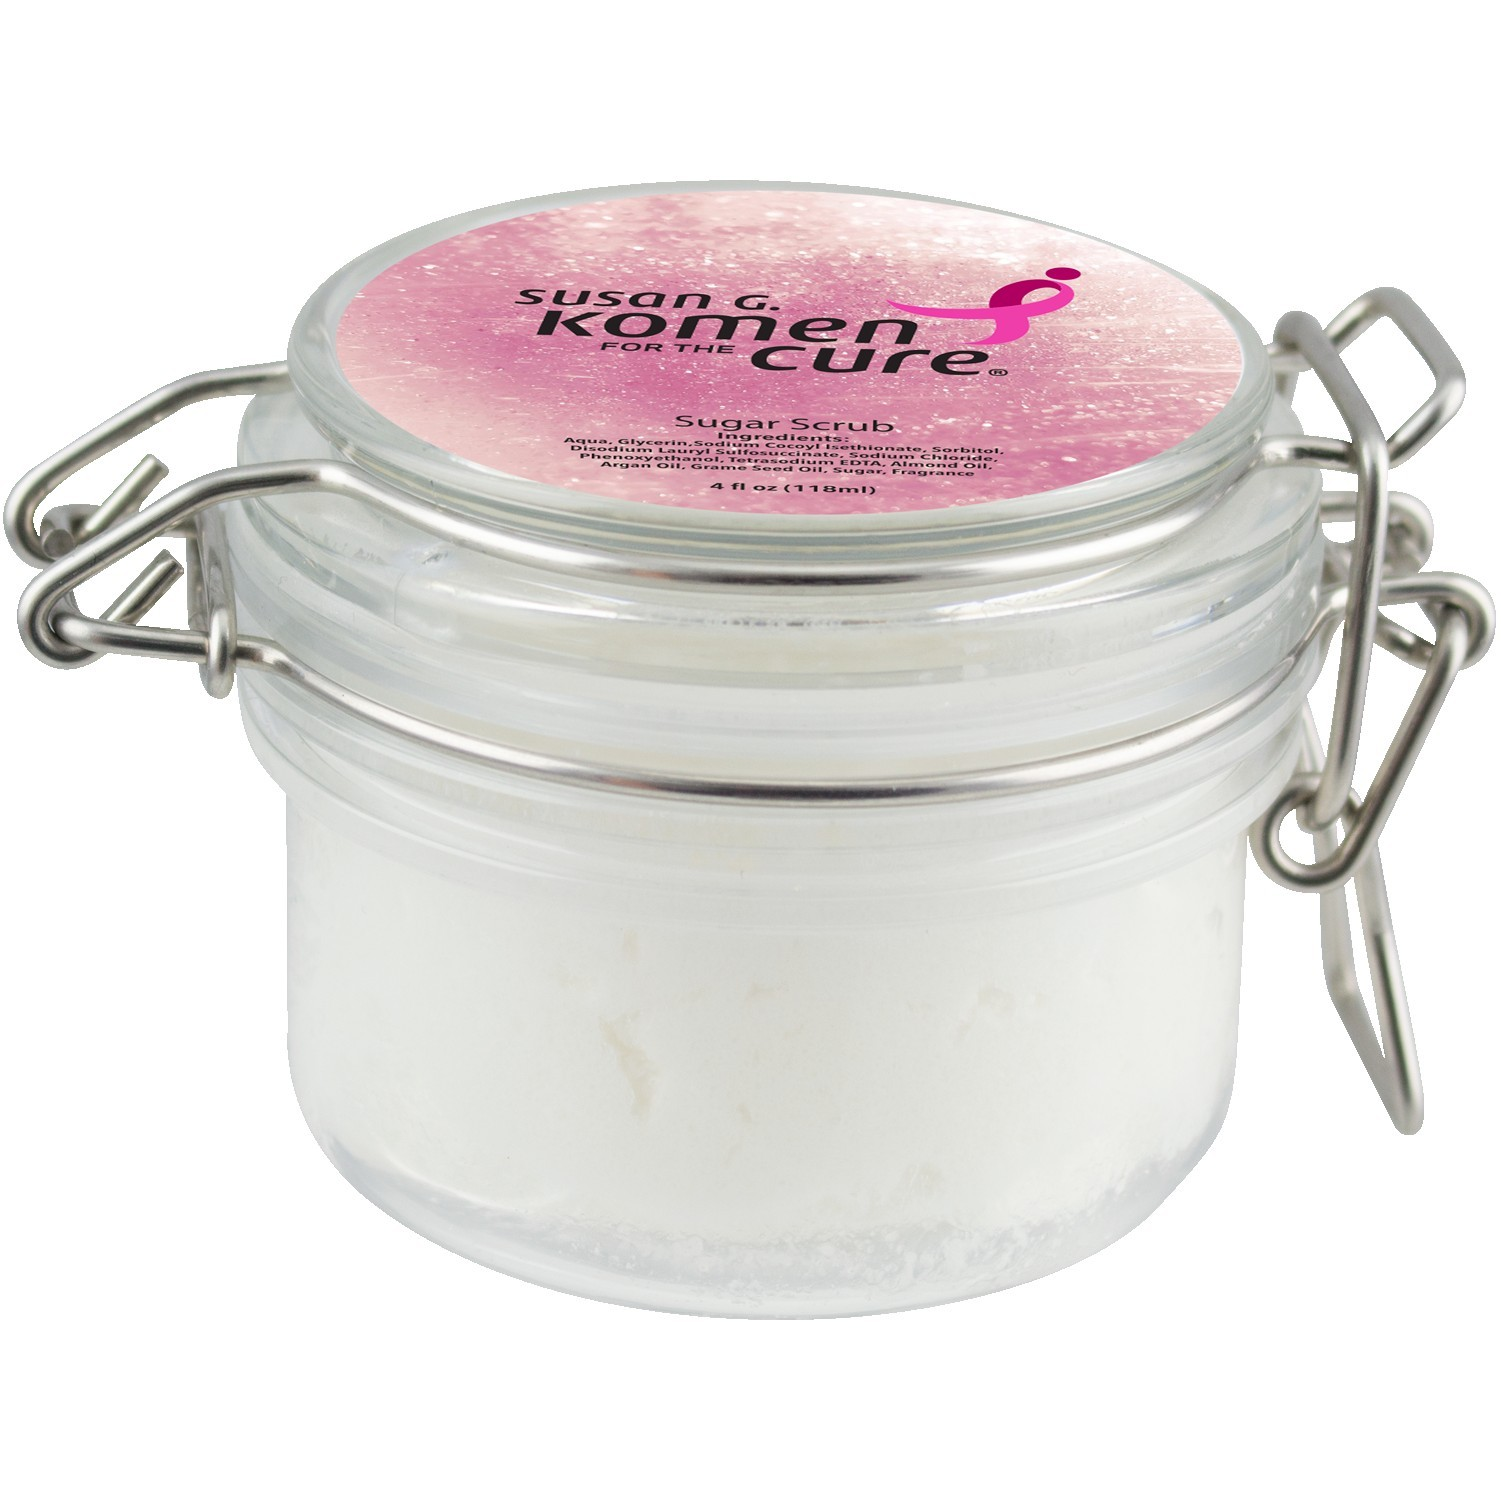 4 Oz. Sugar Scrub